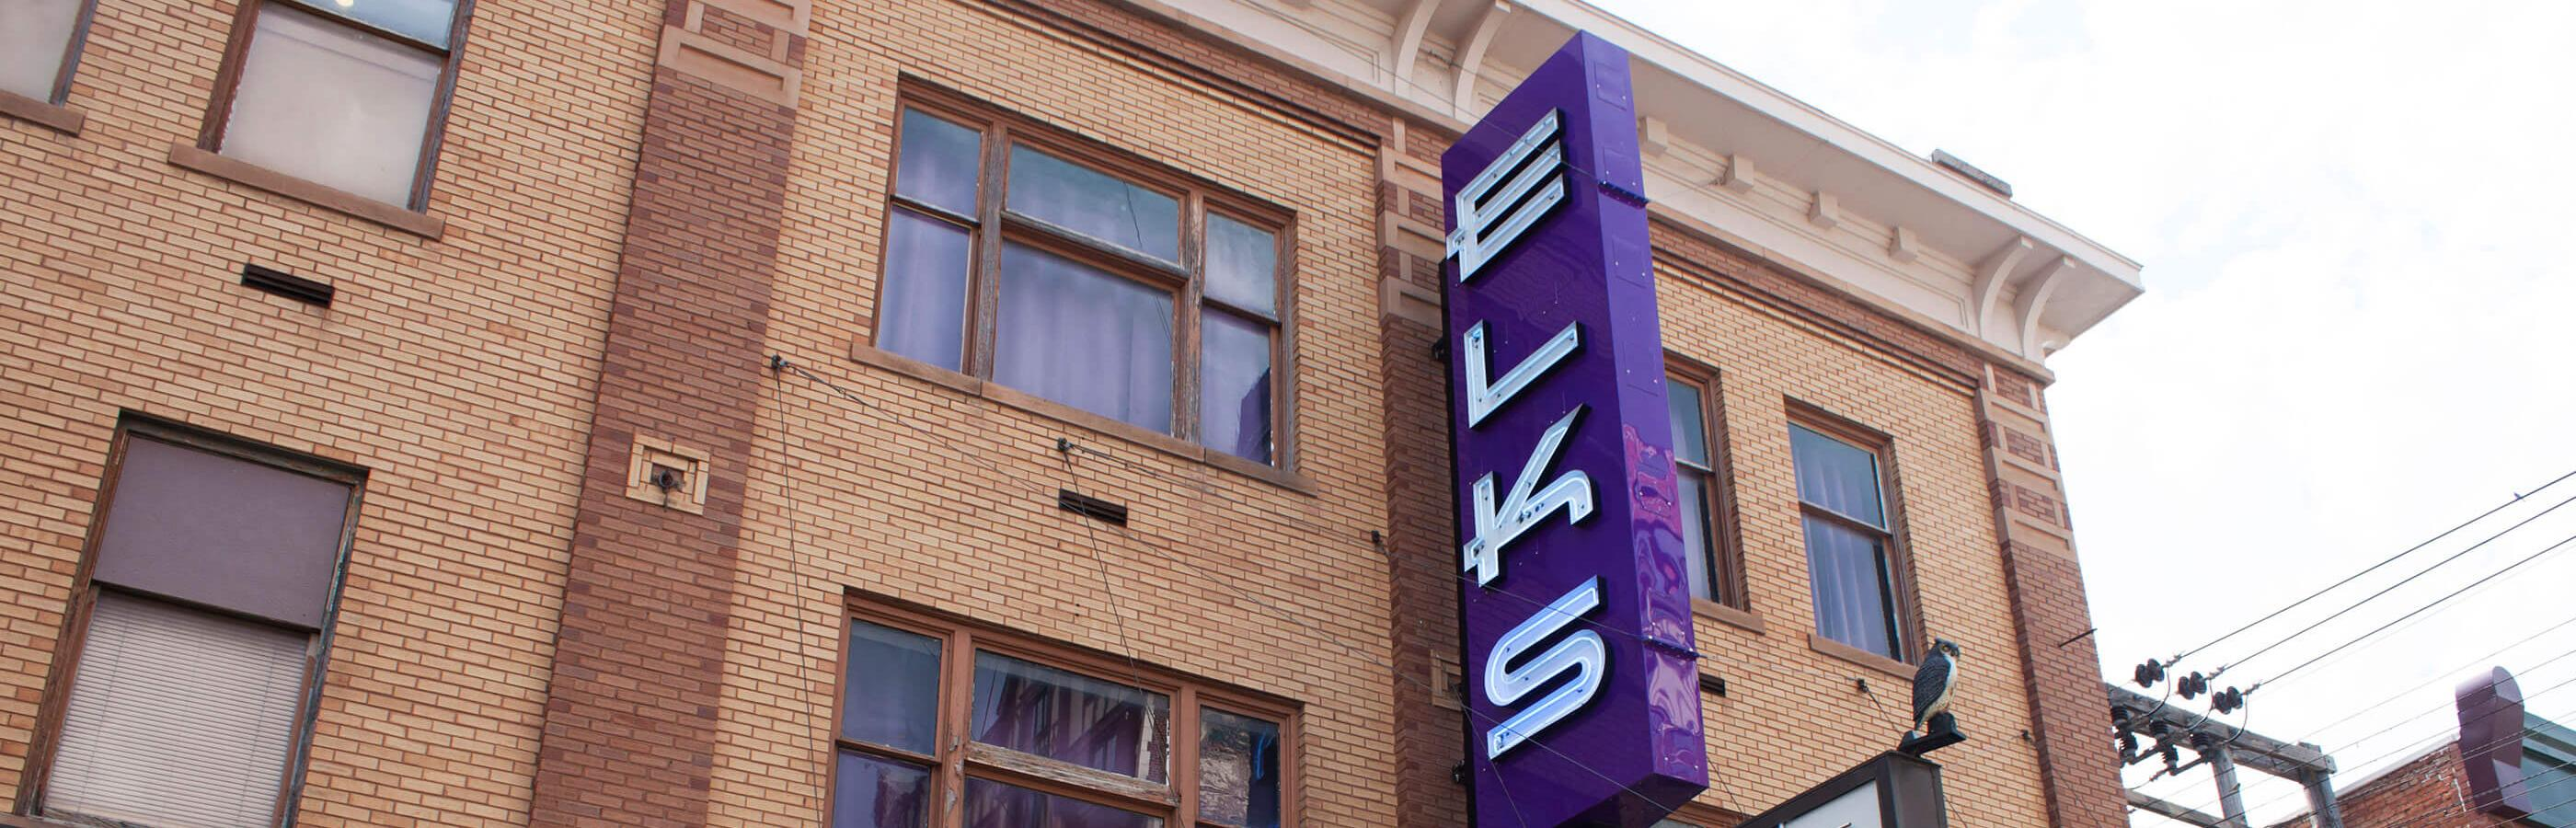 Elks Movie Theatre in Downtown Rapid City